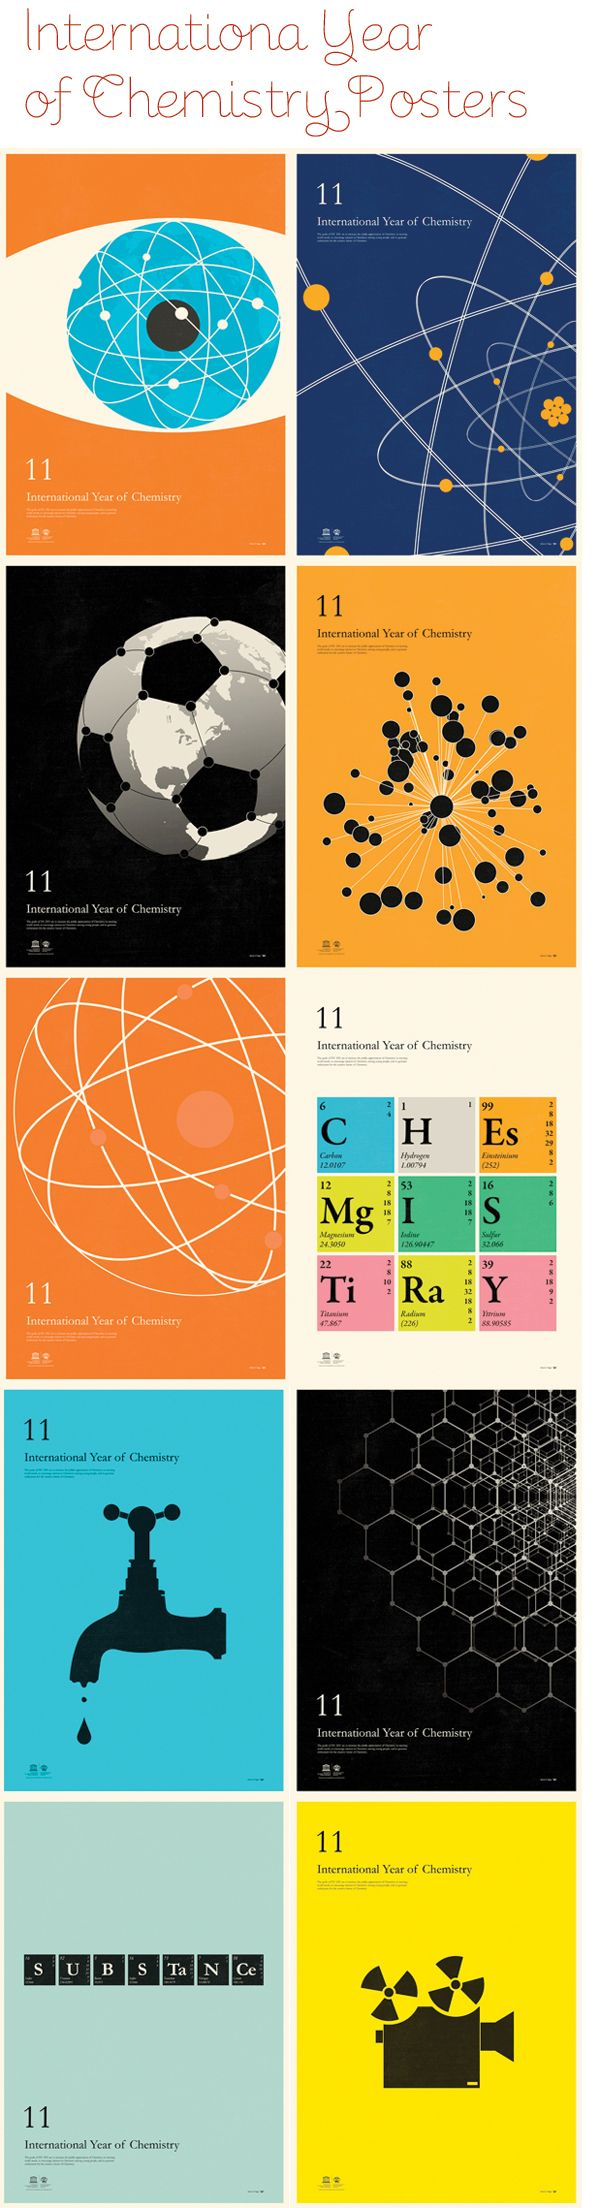 Very cool chemistry posters! Might inspire something in your classroom.